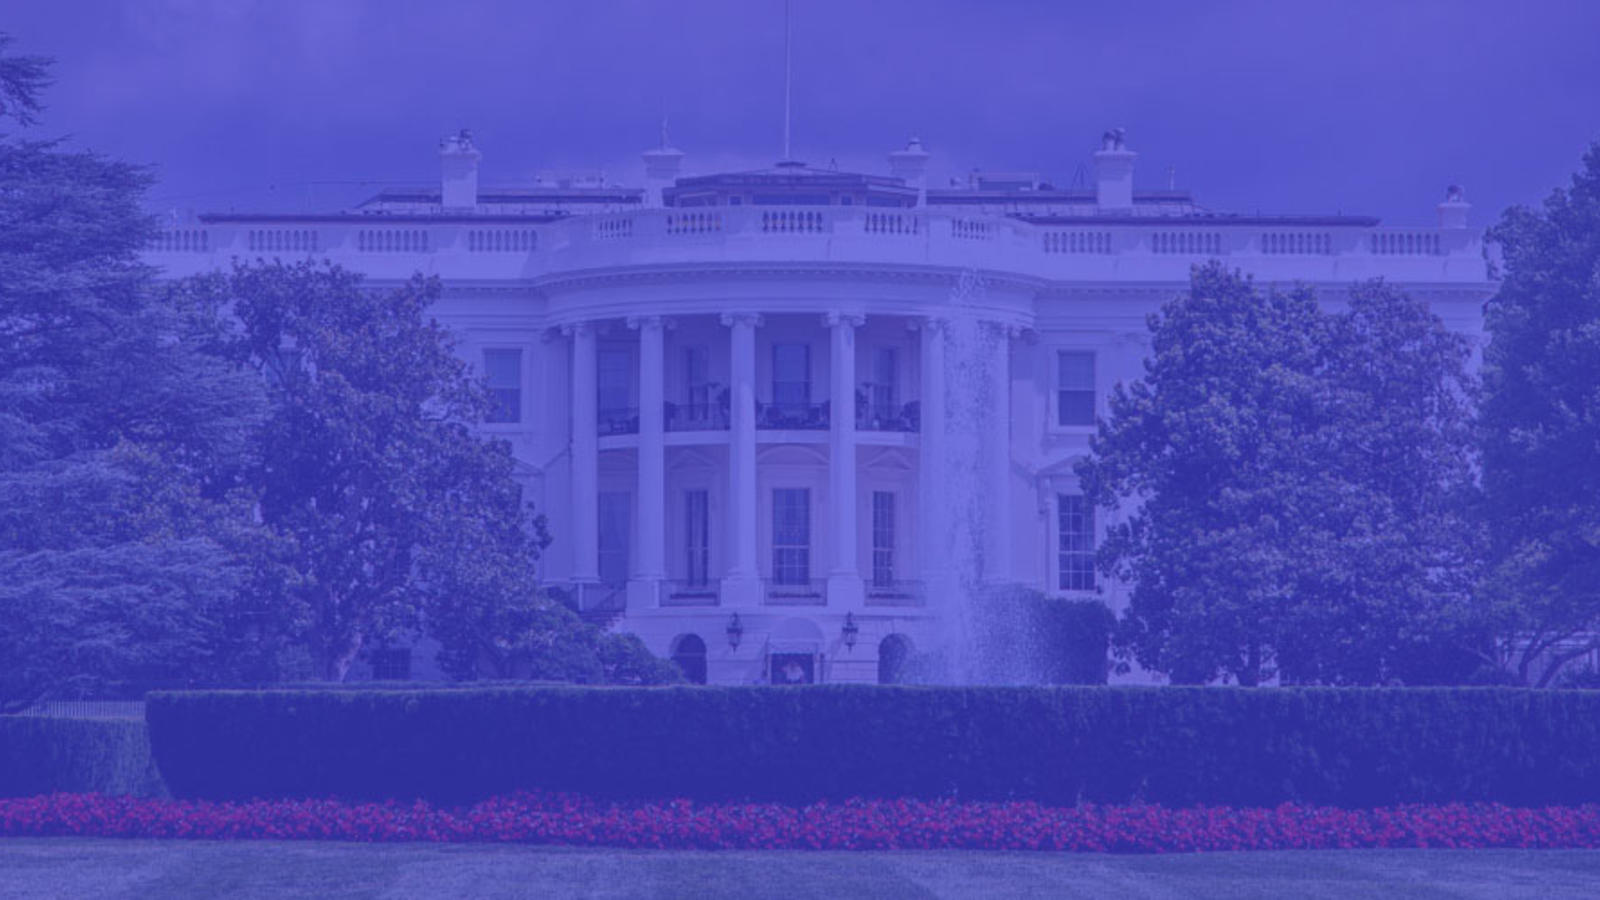 White House with blue tint